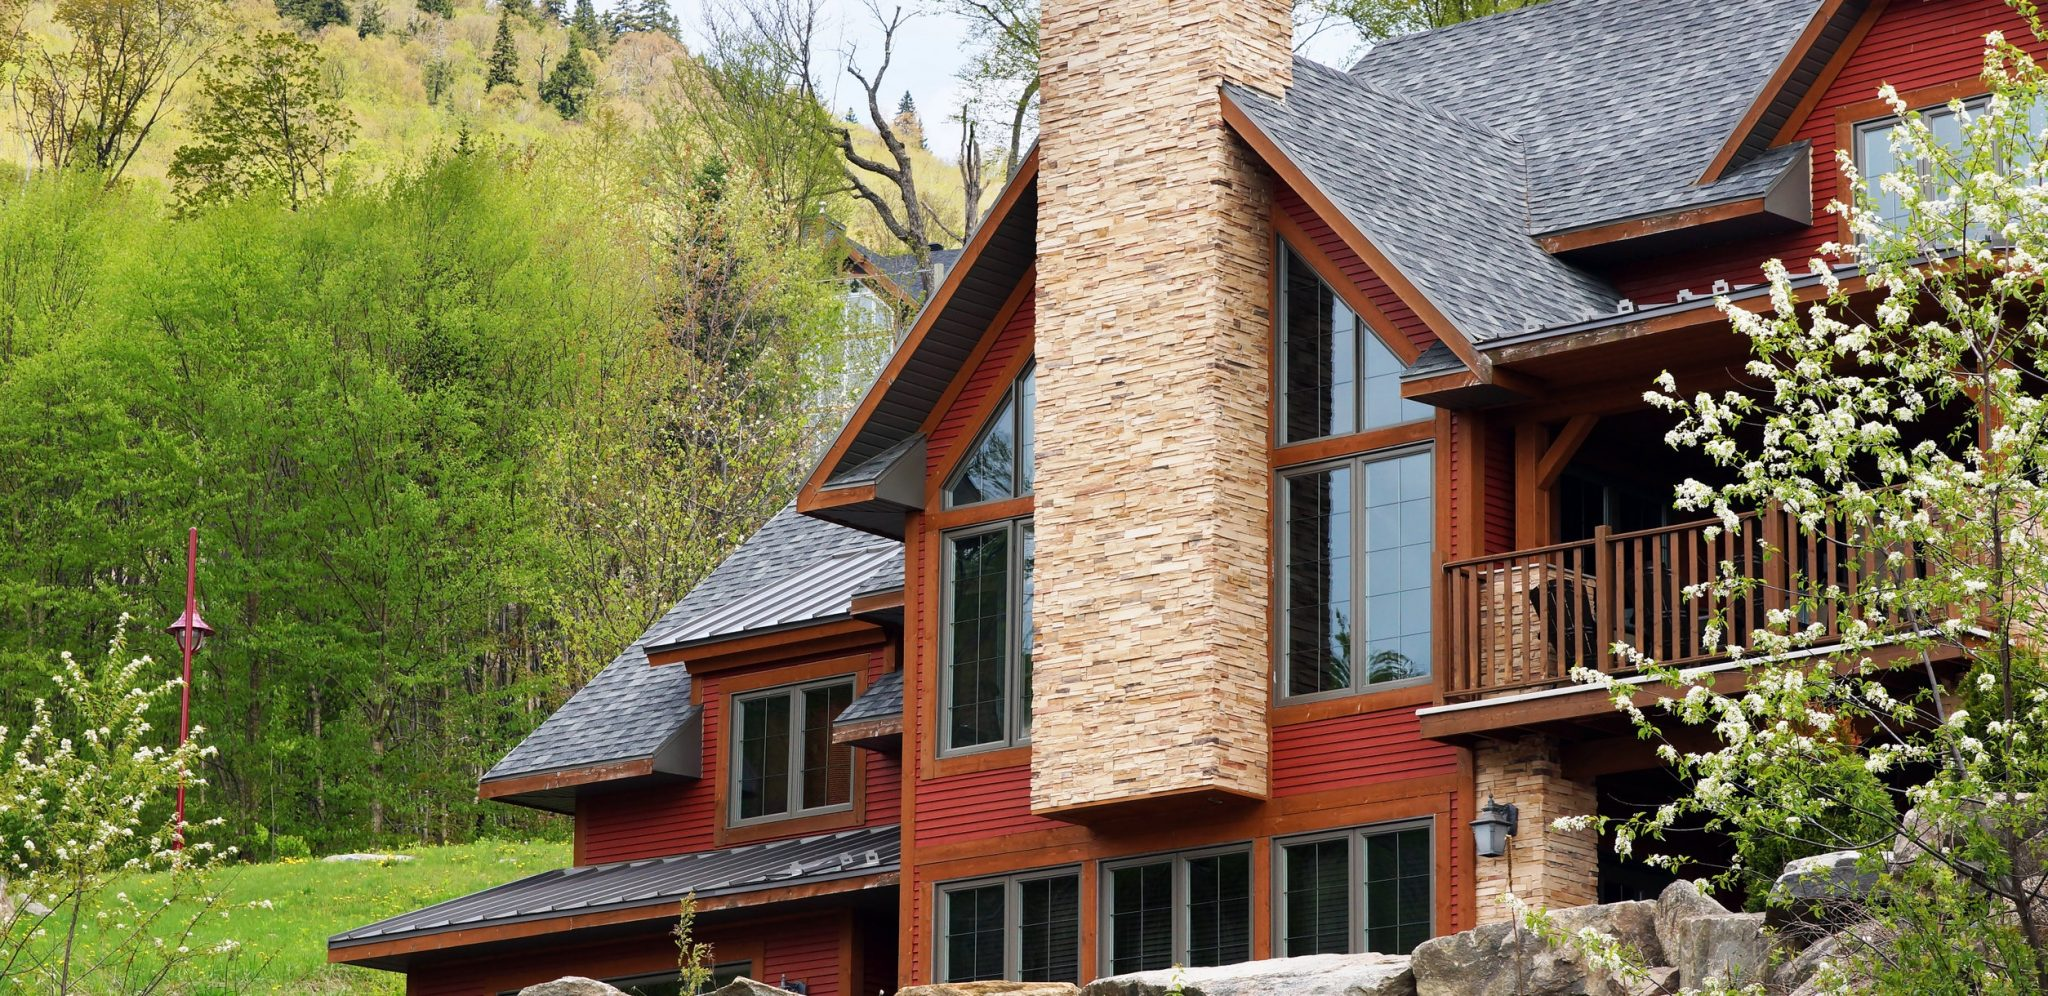 Exterior of a home in the mountains